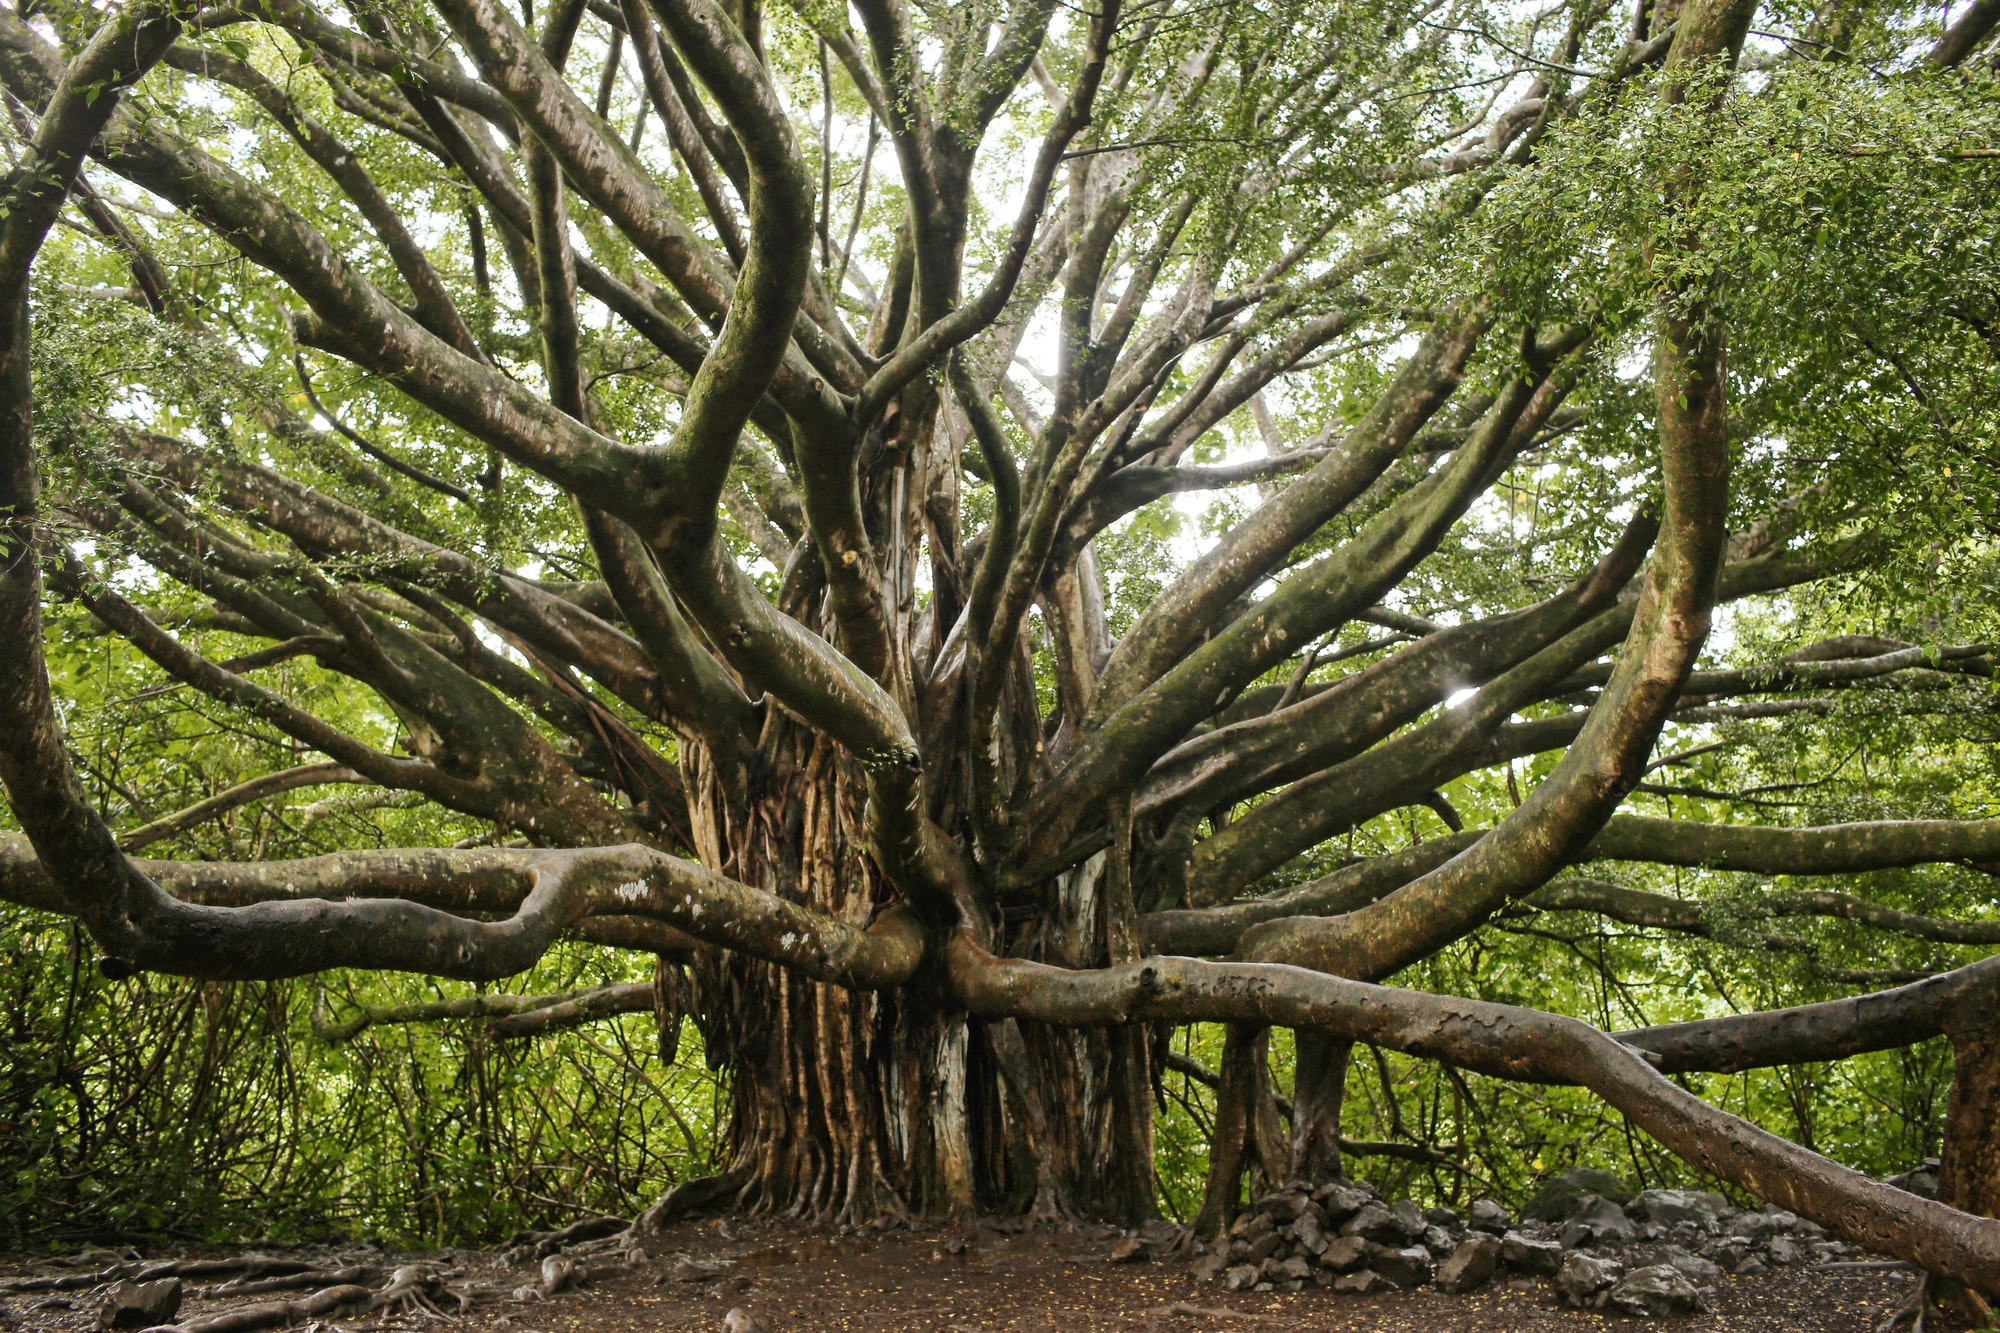 An old banyan tree with thick moss-laden trunks and roots that dangle from the trunks.